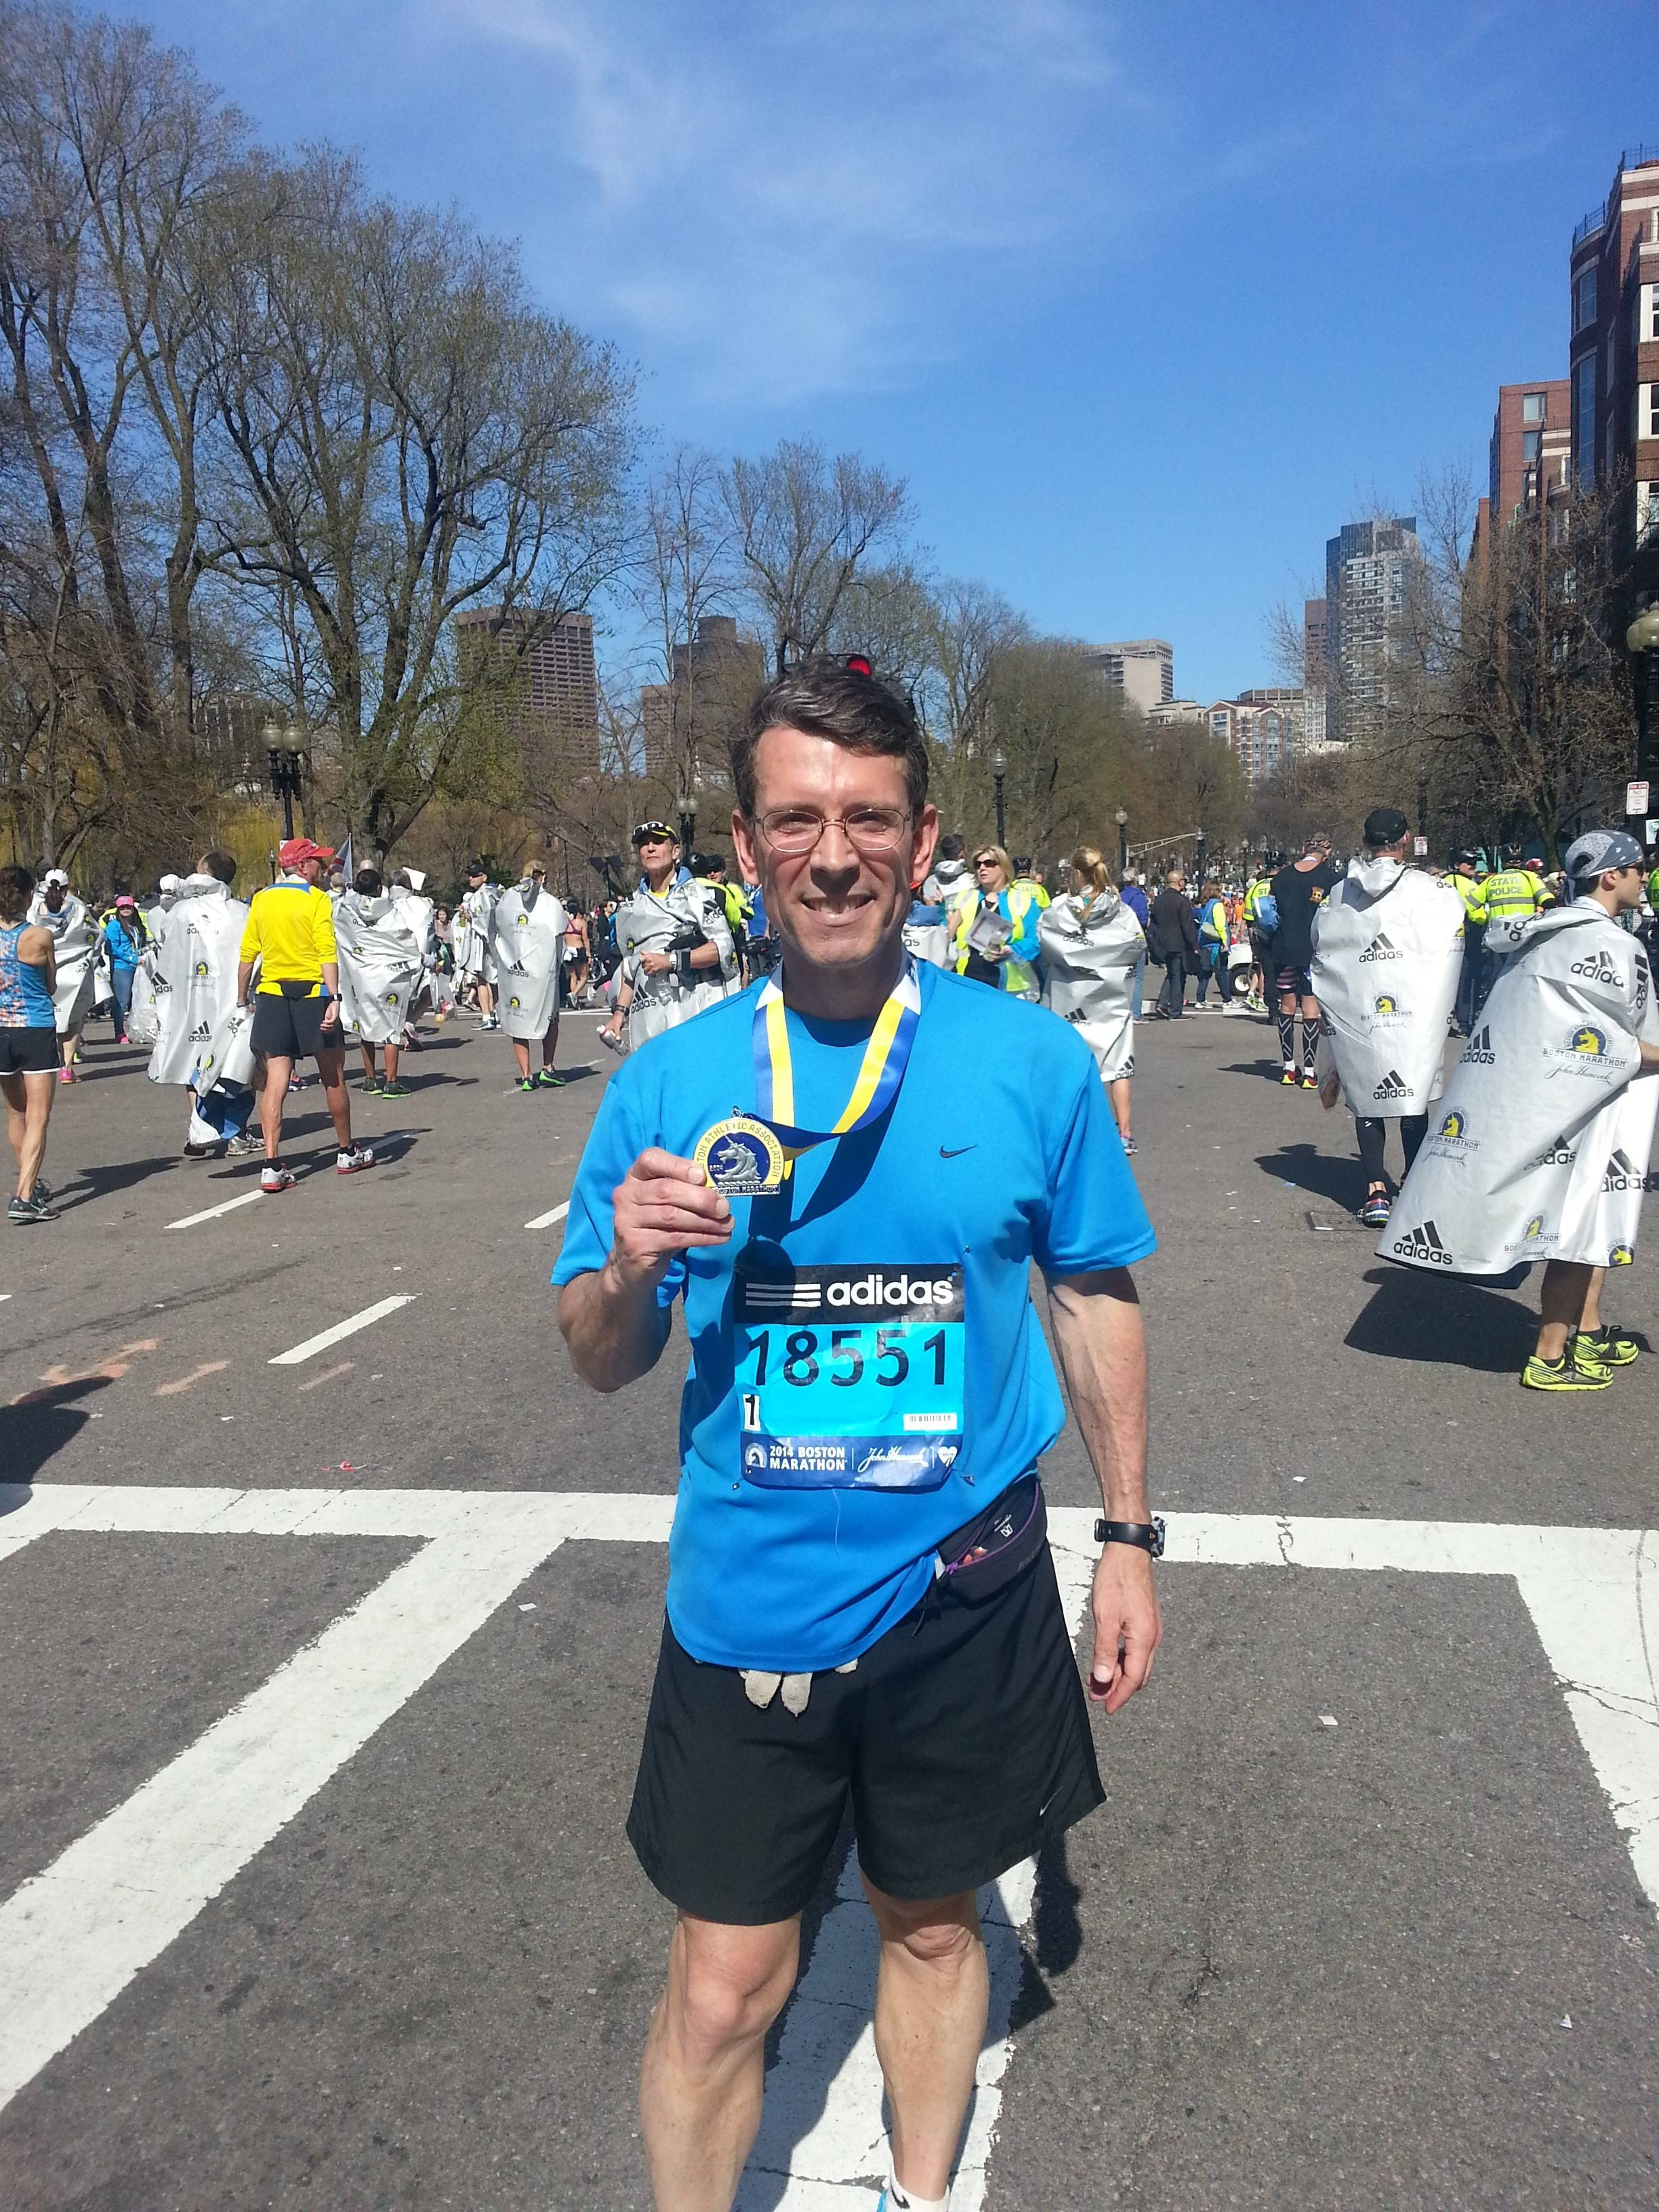 Arlington Heights Mayor Tom Hayes after completing the Boston Marathon in 3:49:03.